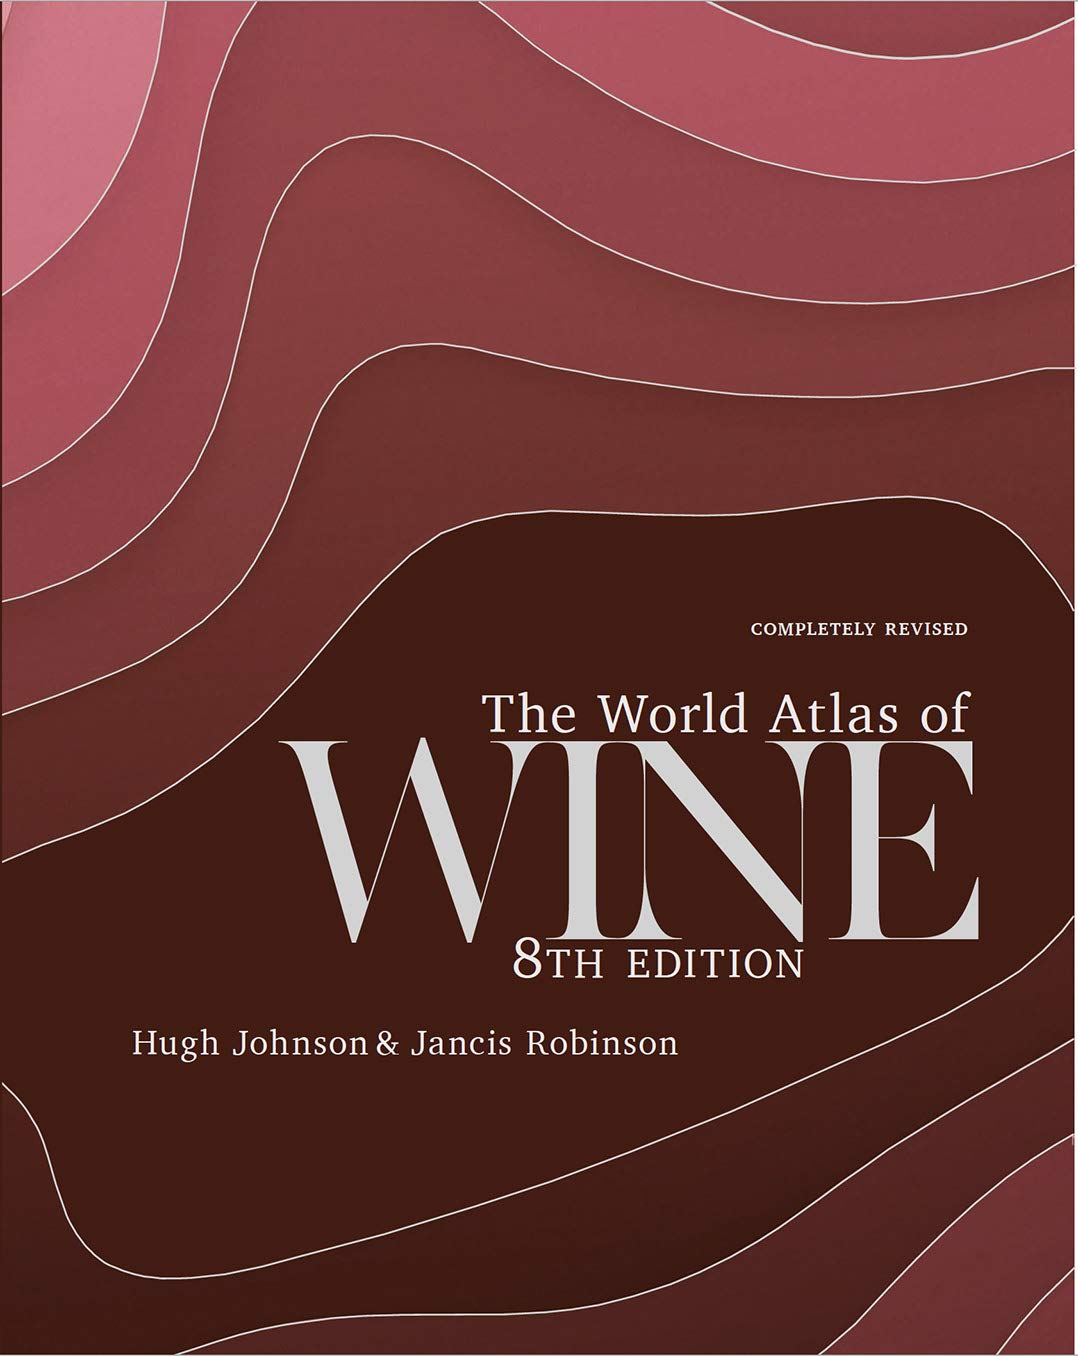 The World Atlas of Wine 8th edition - cover